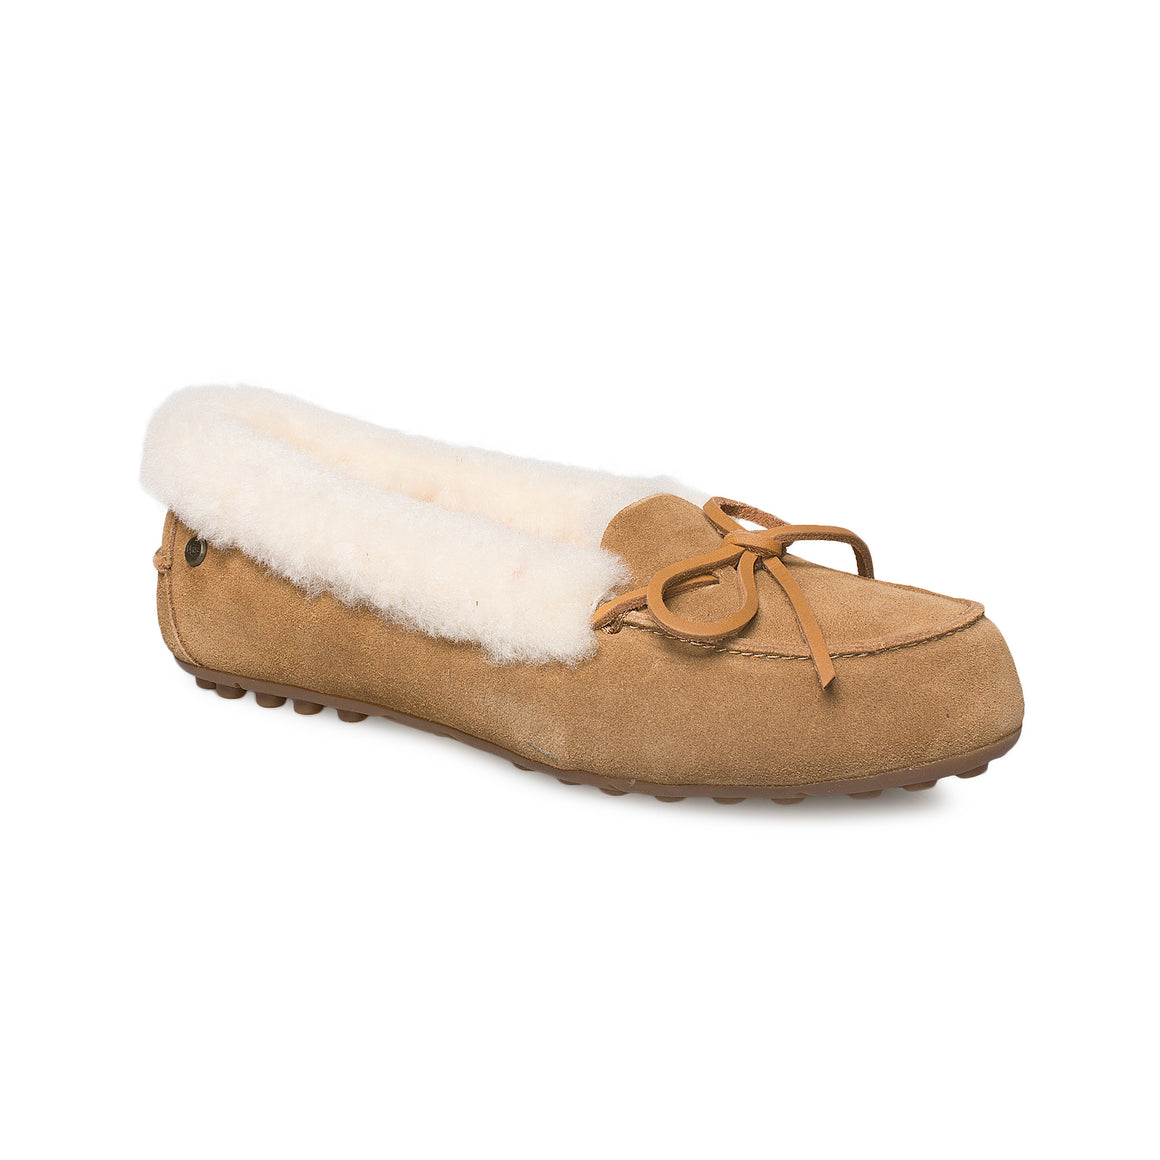 UGG Solana Loafer Chestnut Slippers - Women's